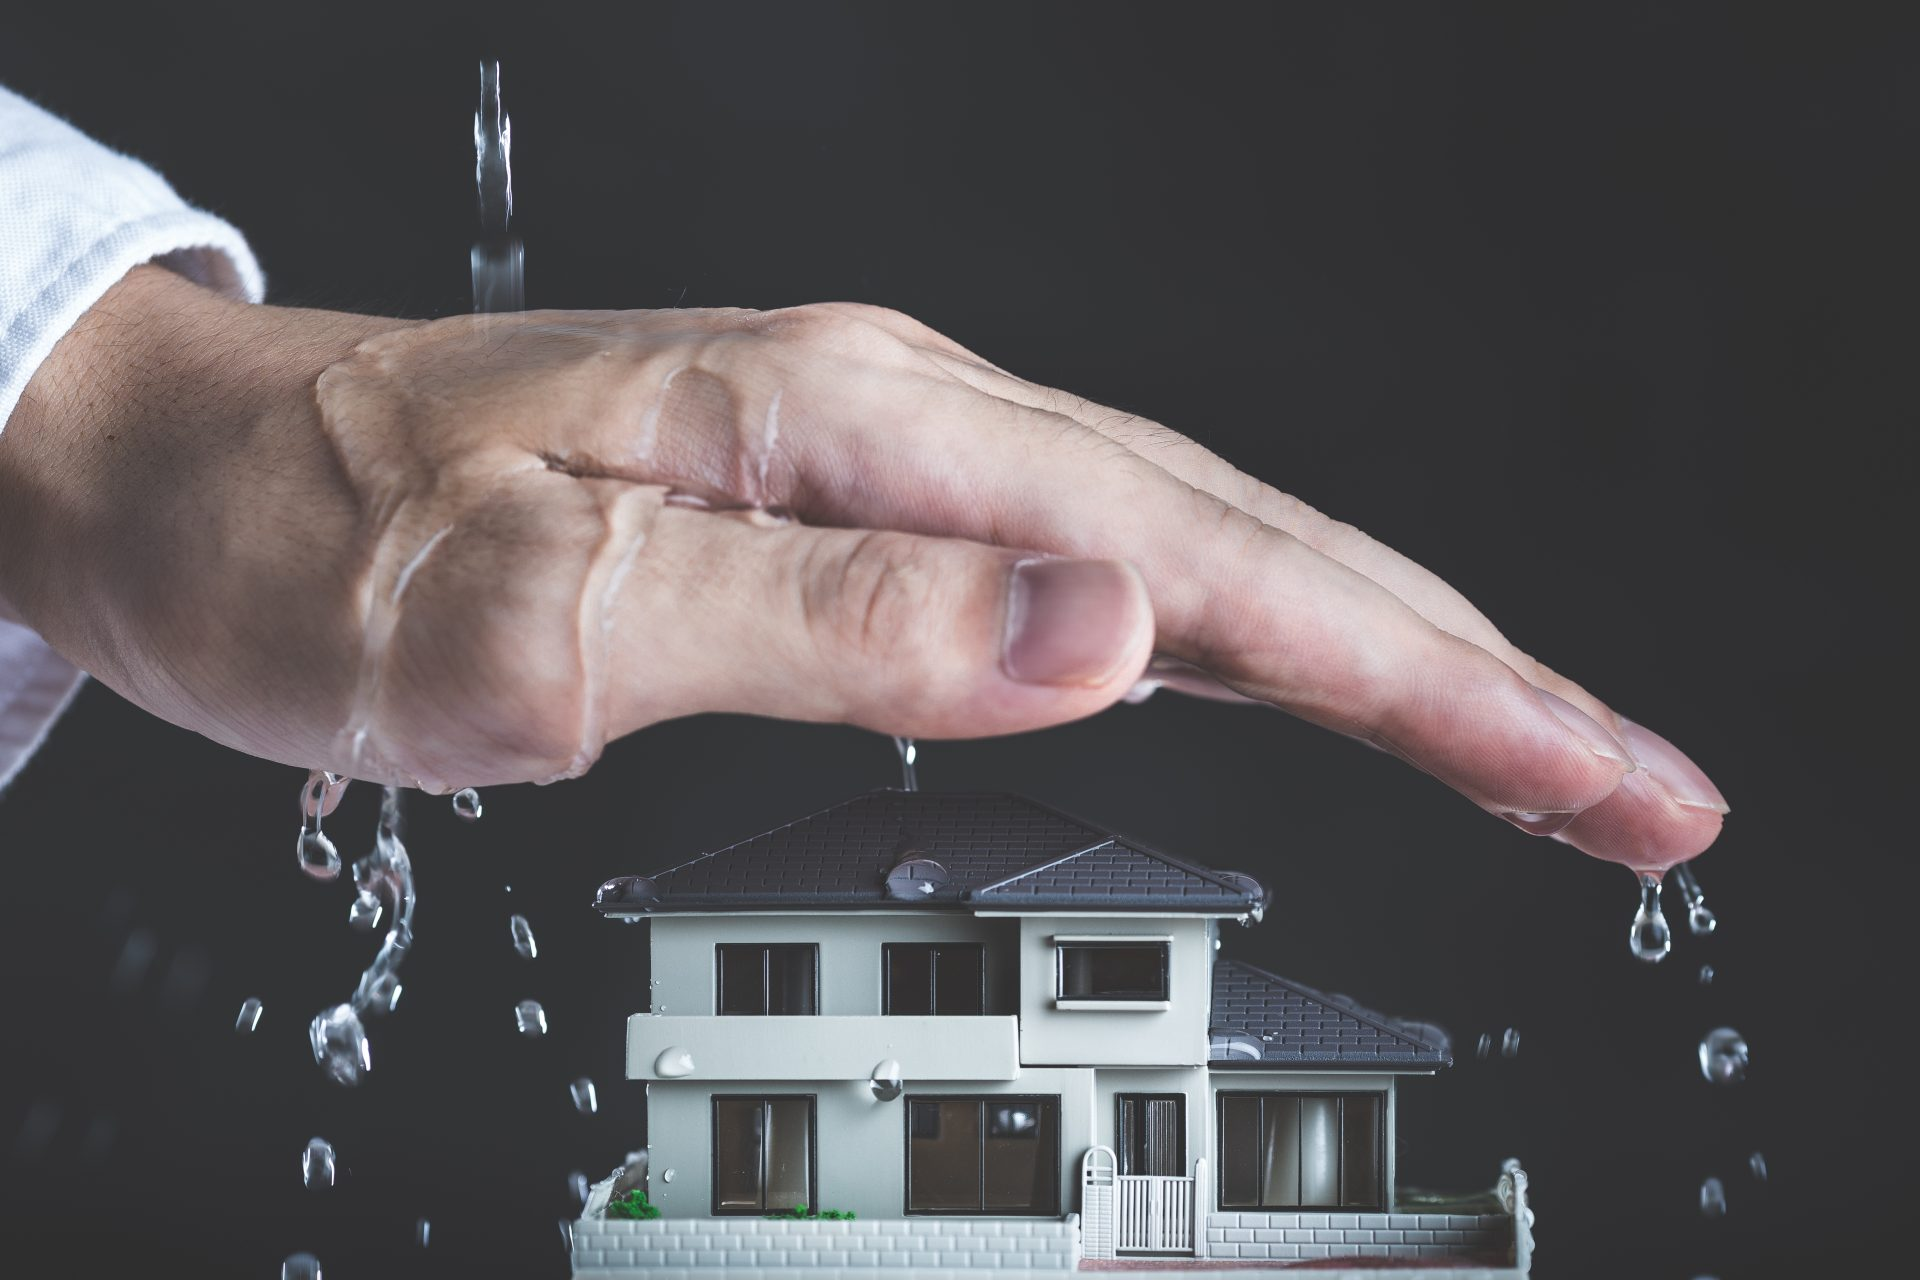 Big hand covering house to provide protection